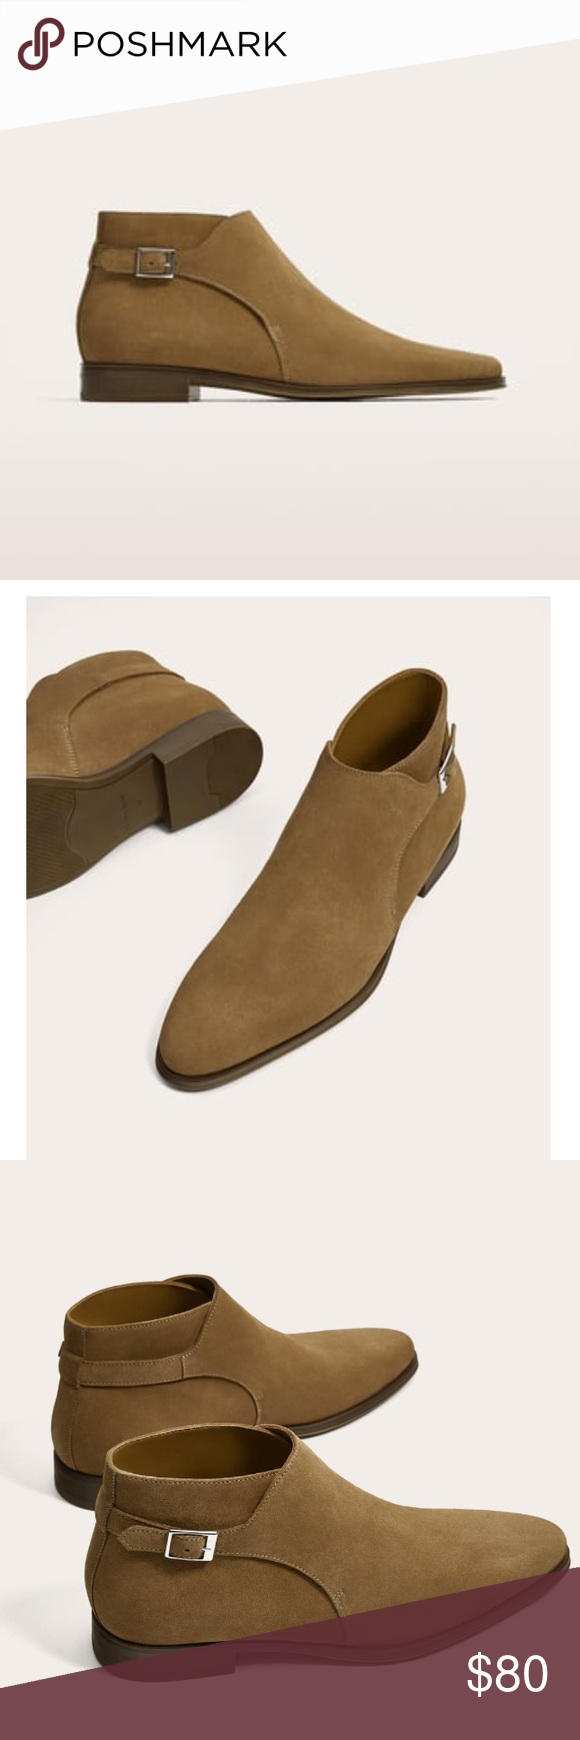 da93cfc2a1800 Zara man Chelsea boot size 44/11 men's Beige split suede leather ankle boots  with pointed toes, and buckle for fastening and caramel colored soles.